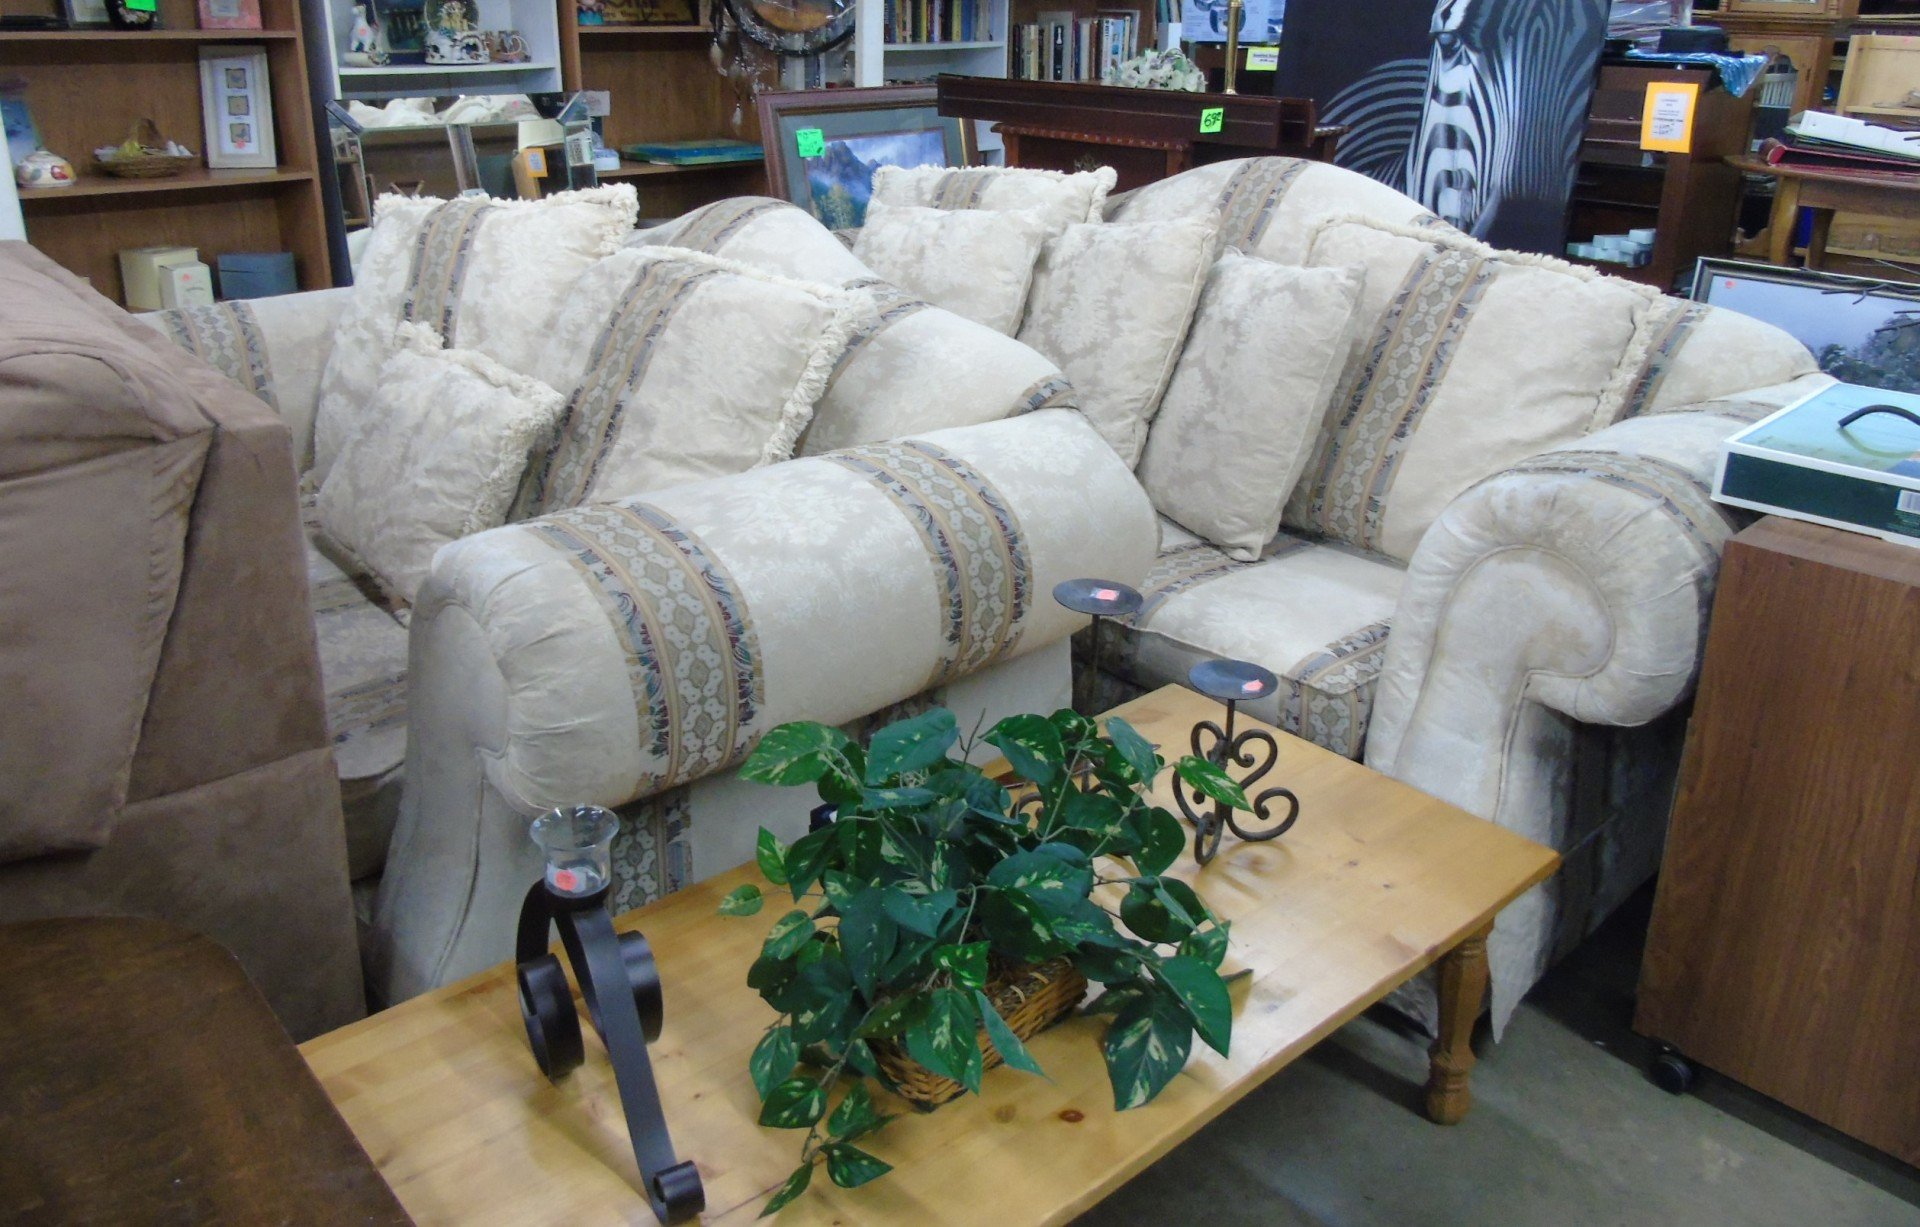 navana revolving chair price in bangladesh golden technologies lift parts living room furniture new and nearly thrift shop